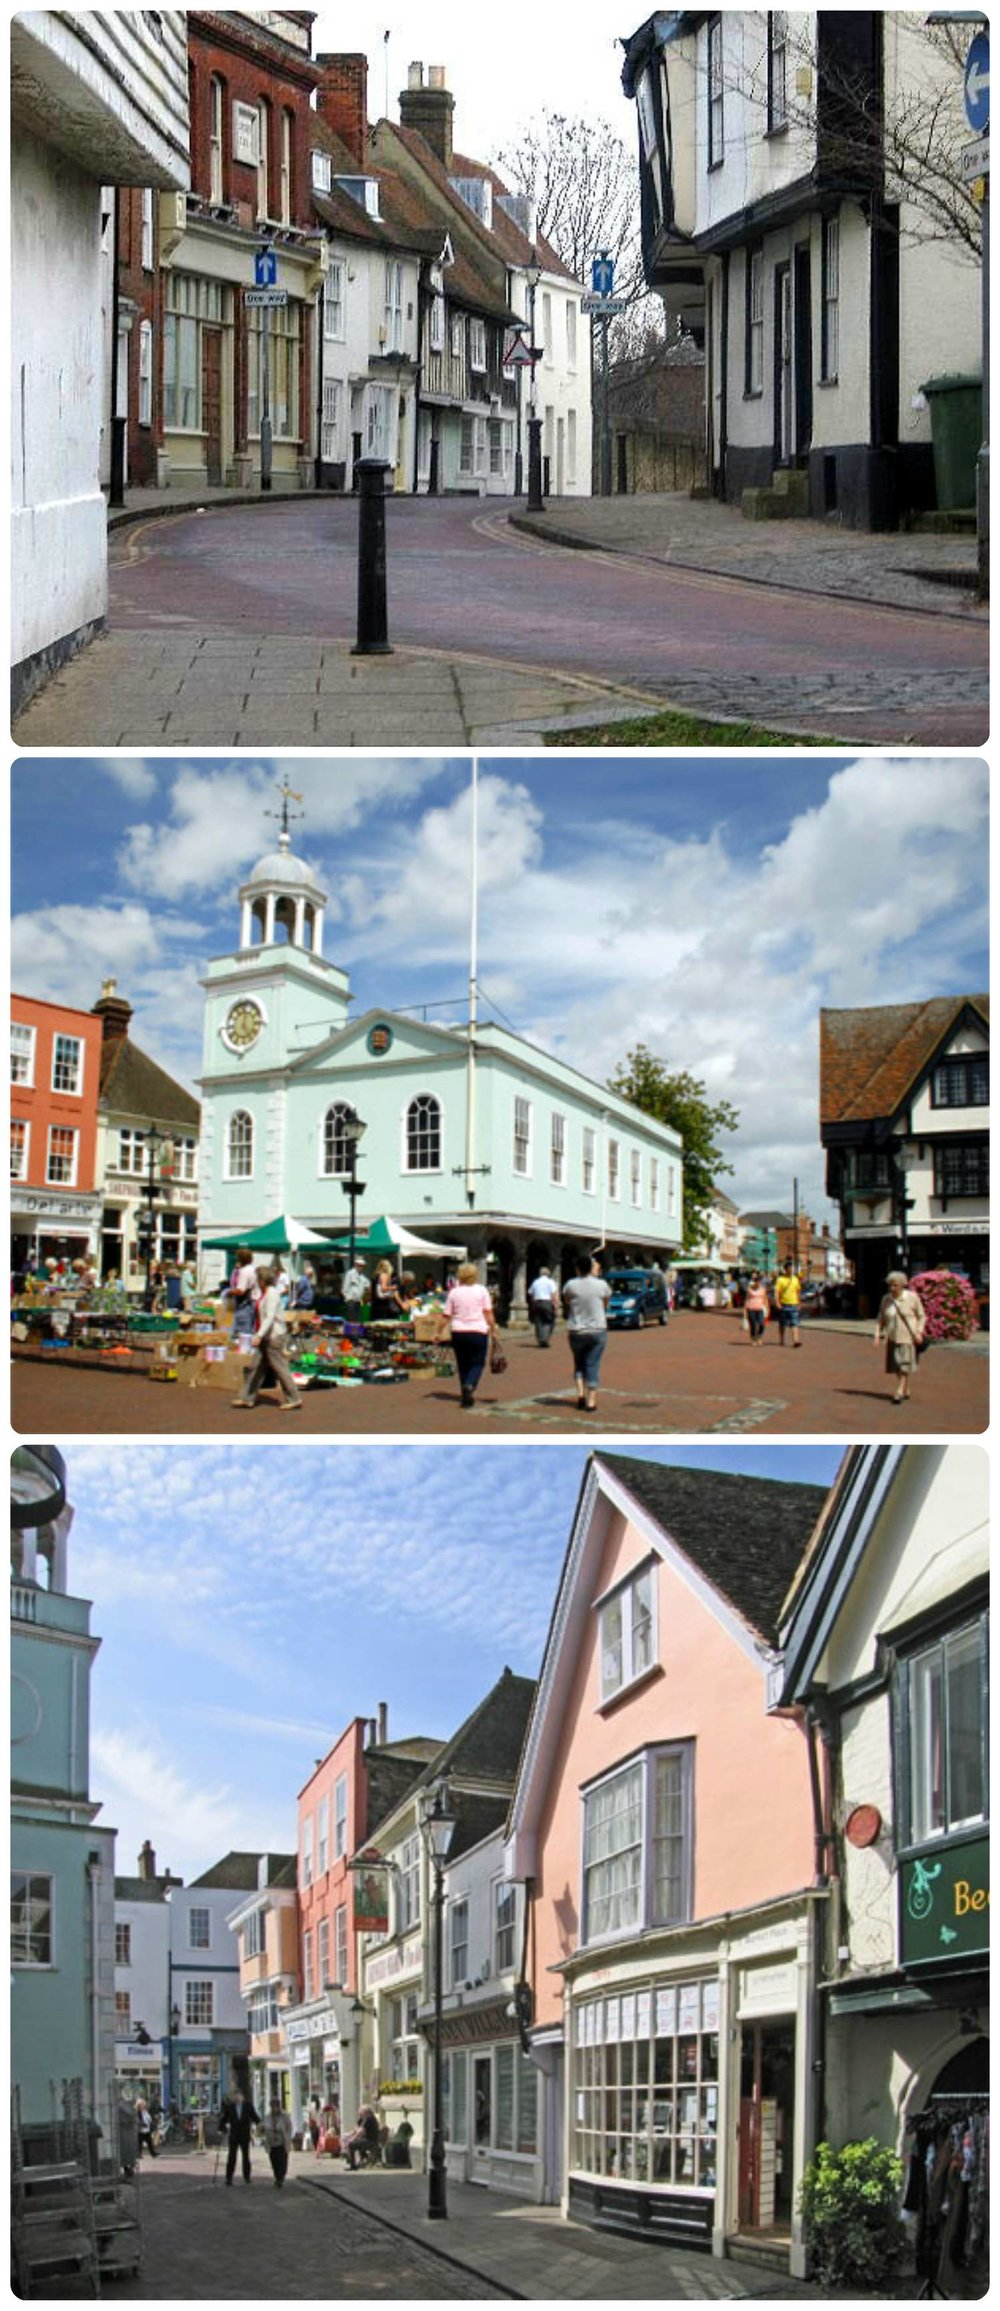 The historical market town, Faversham in the UK.